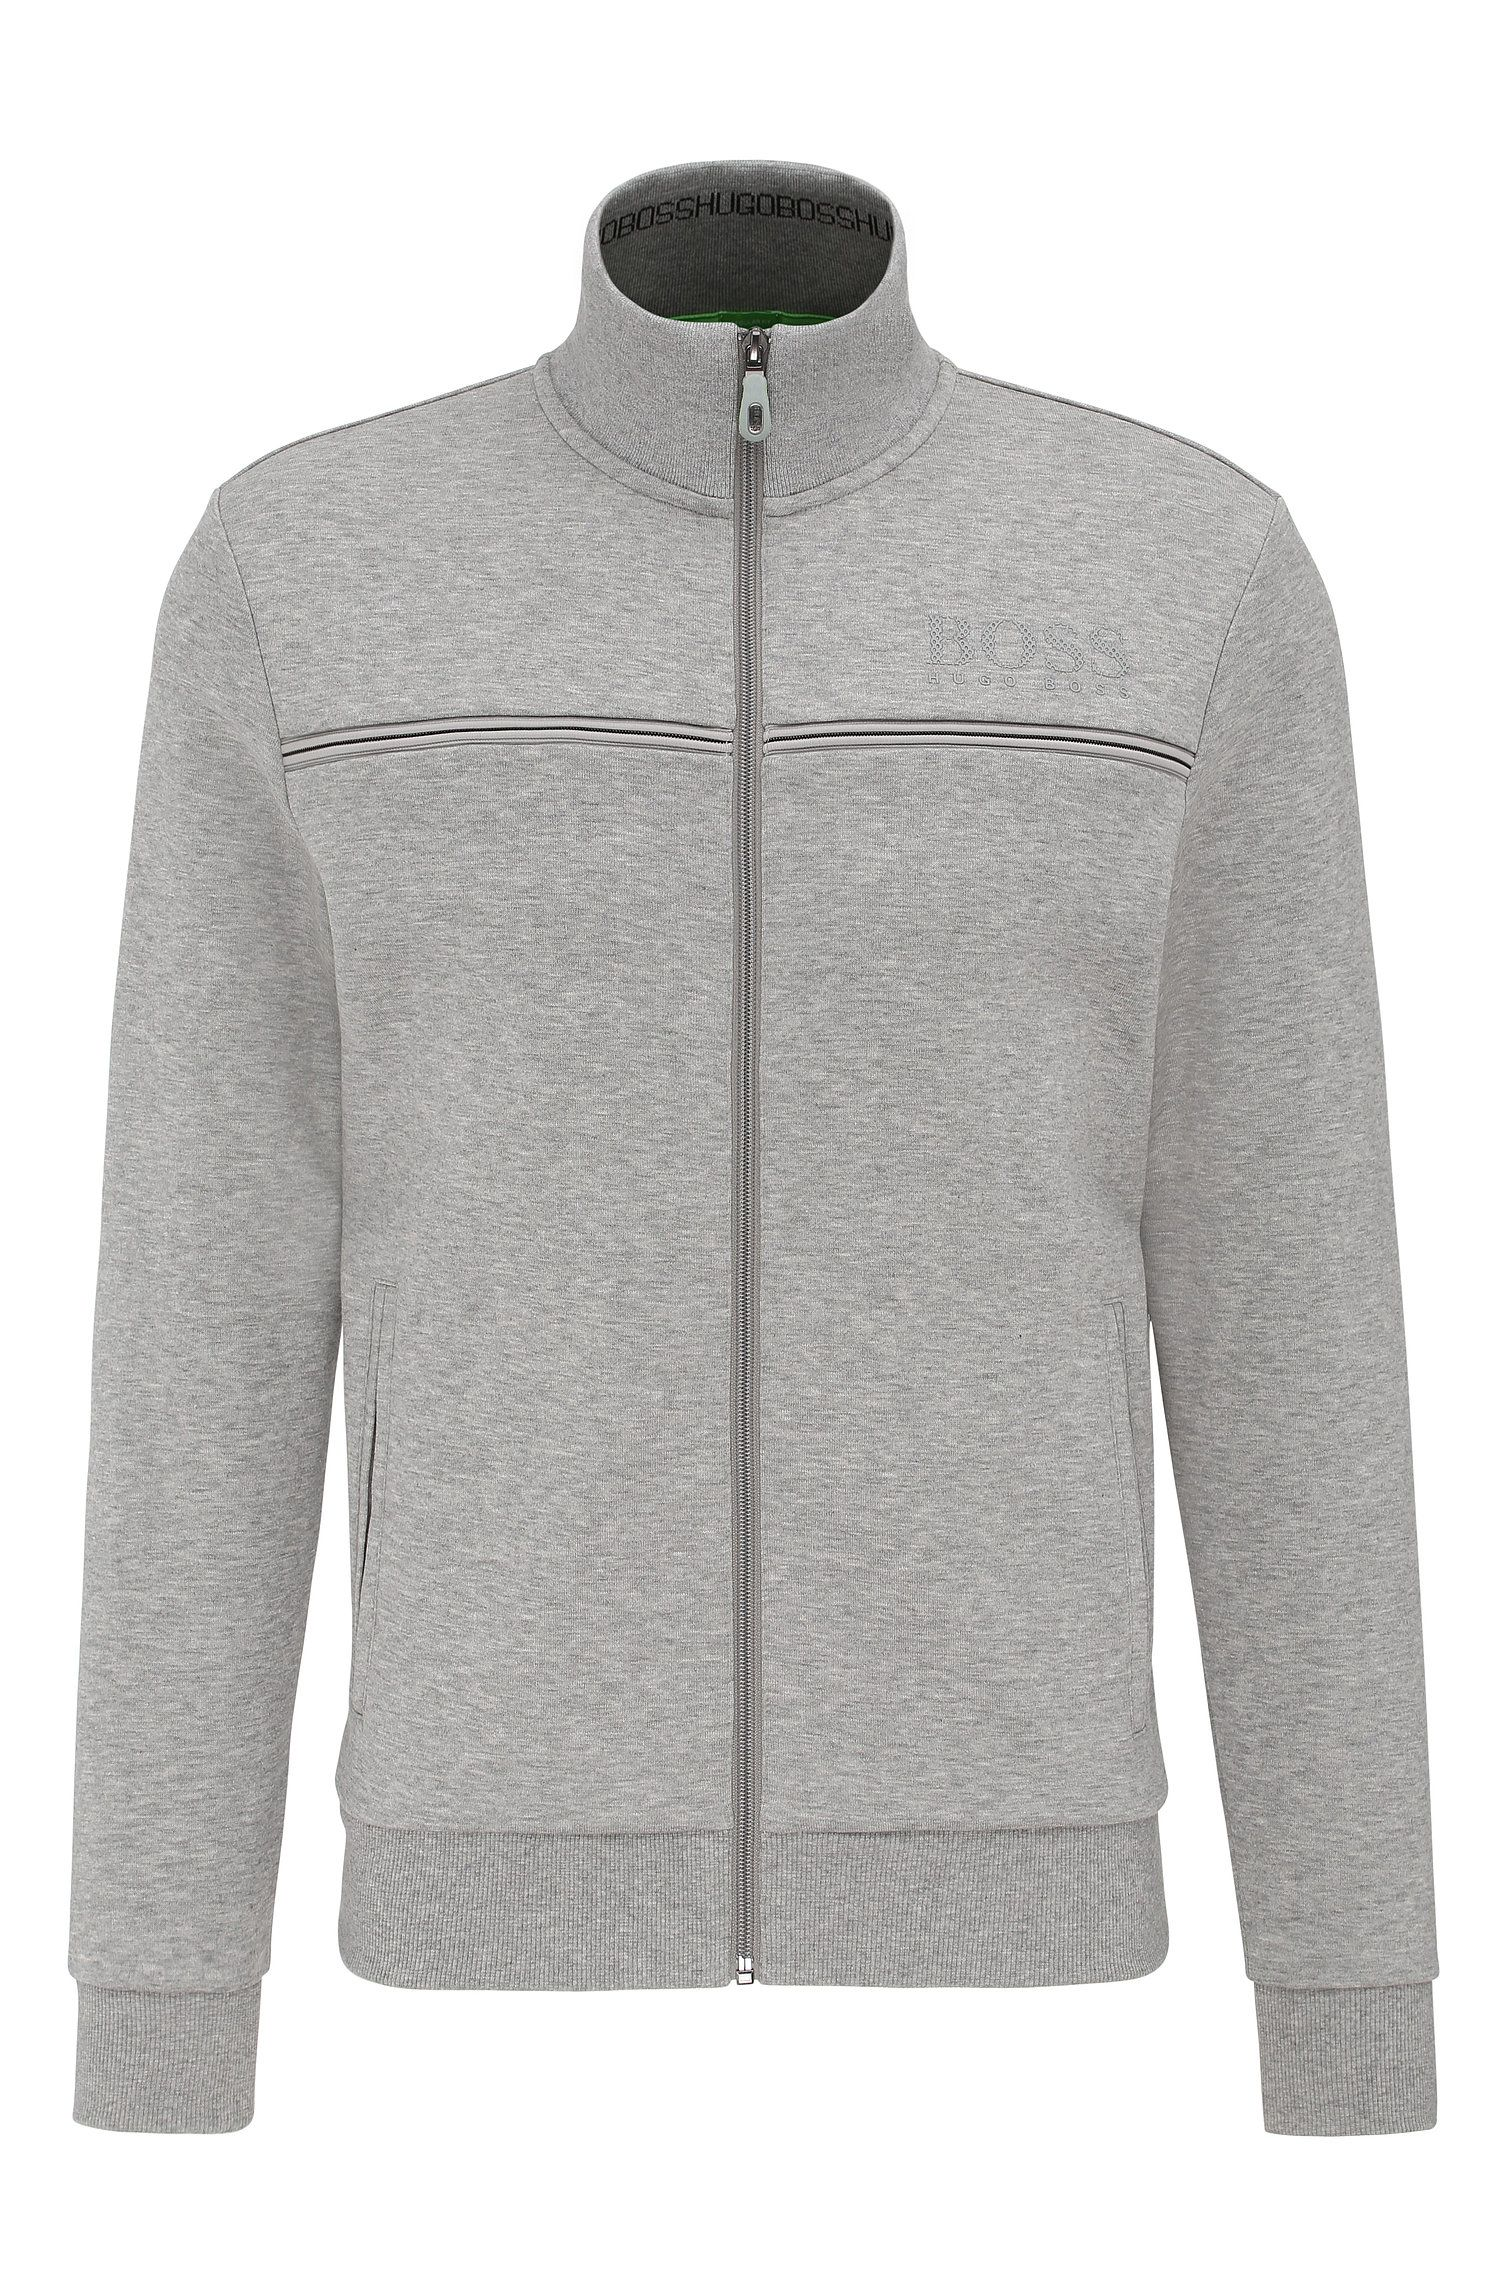 Regular-Fit Sweatshirt-Jacke aus Baumwoll-Mix: ´Skaz`